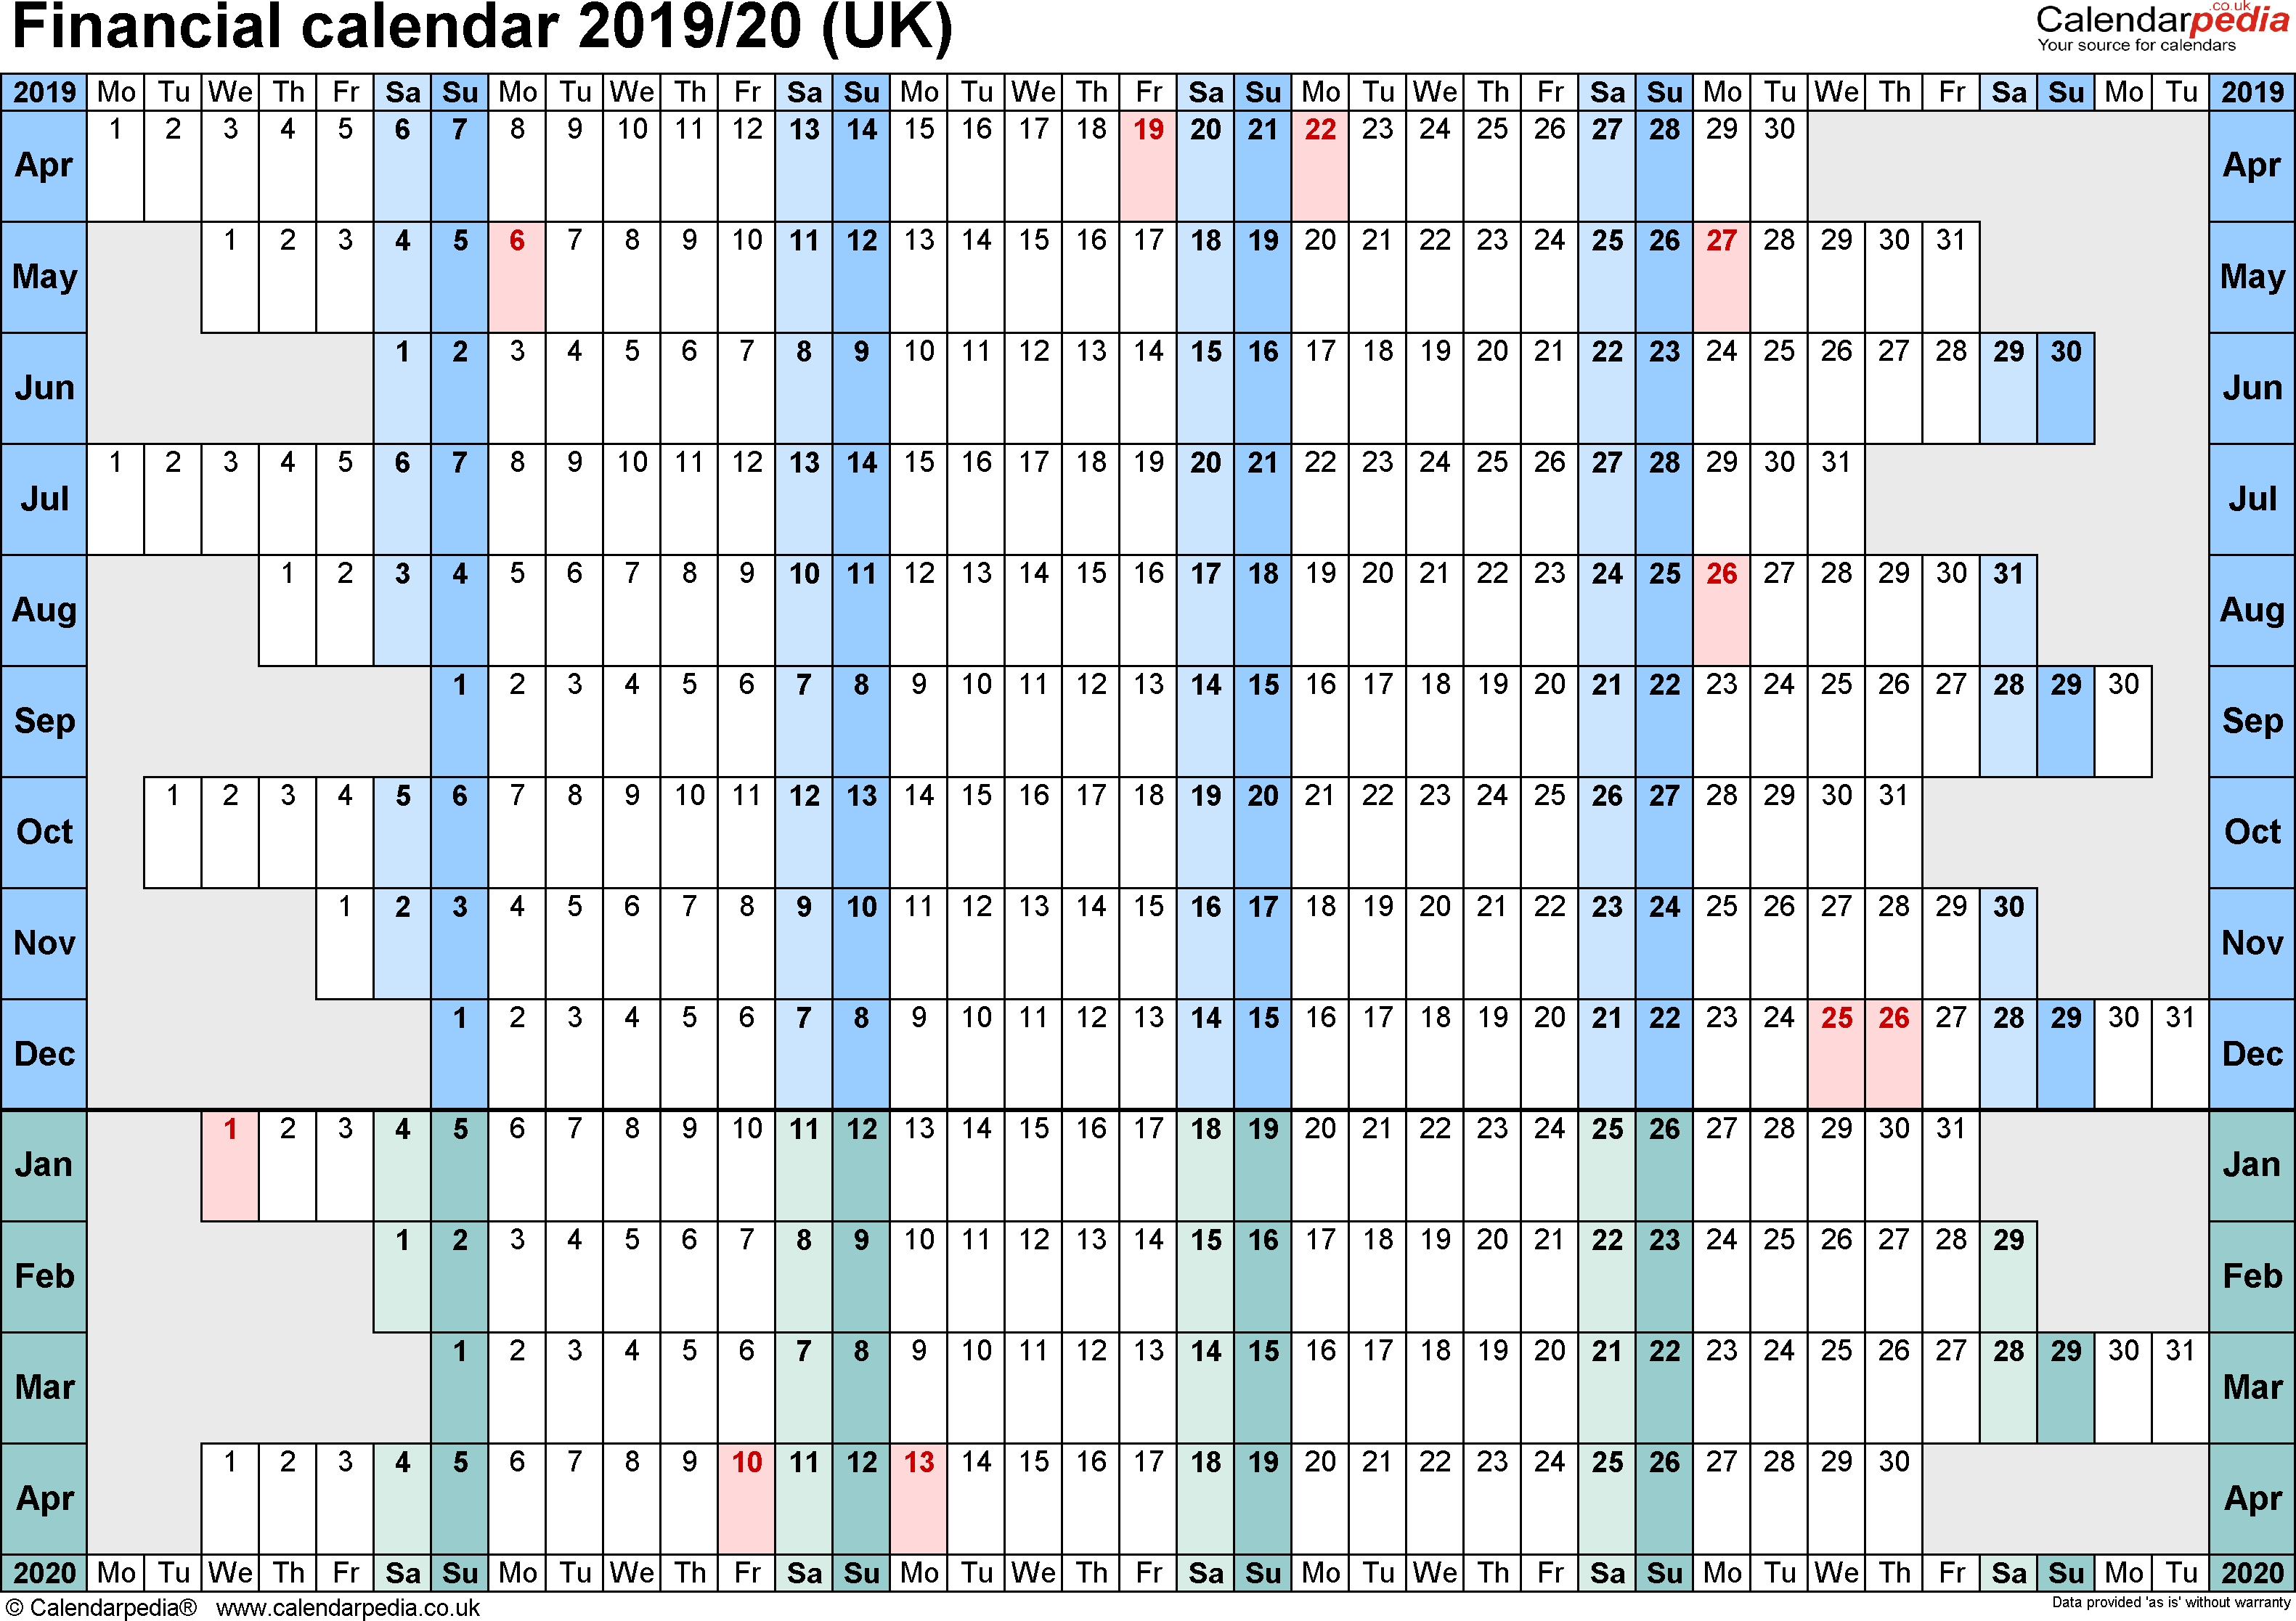 Financial Calendars 2019/20 (Uk) In Pdf Format pertaining to Tax Year Calendar 2019 2020